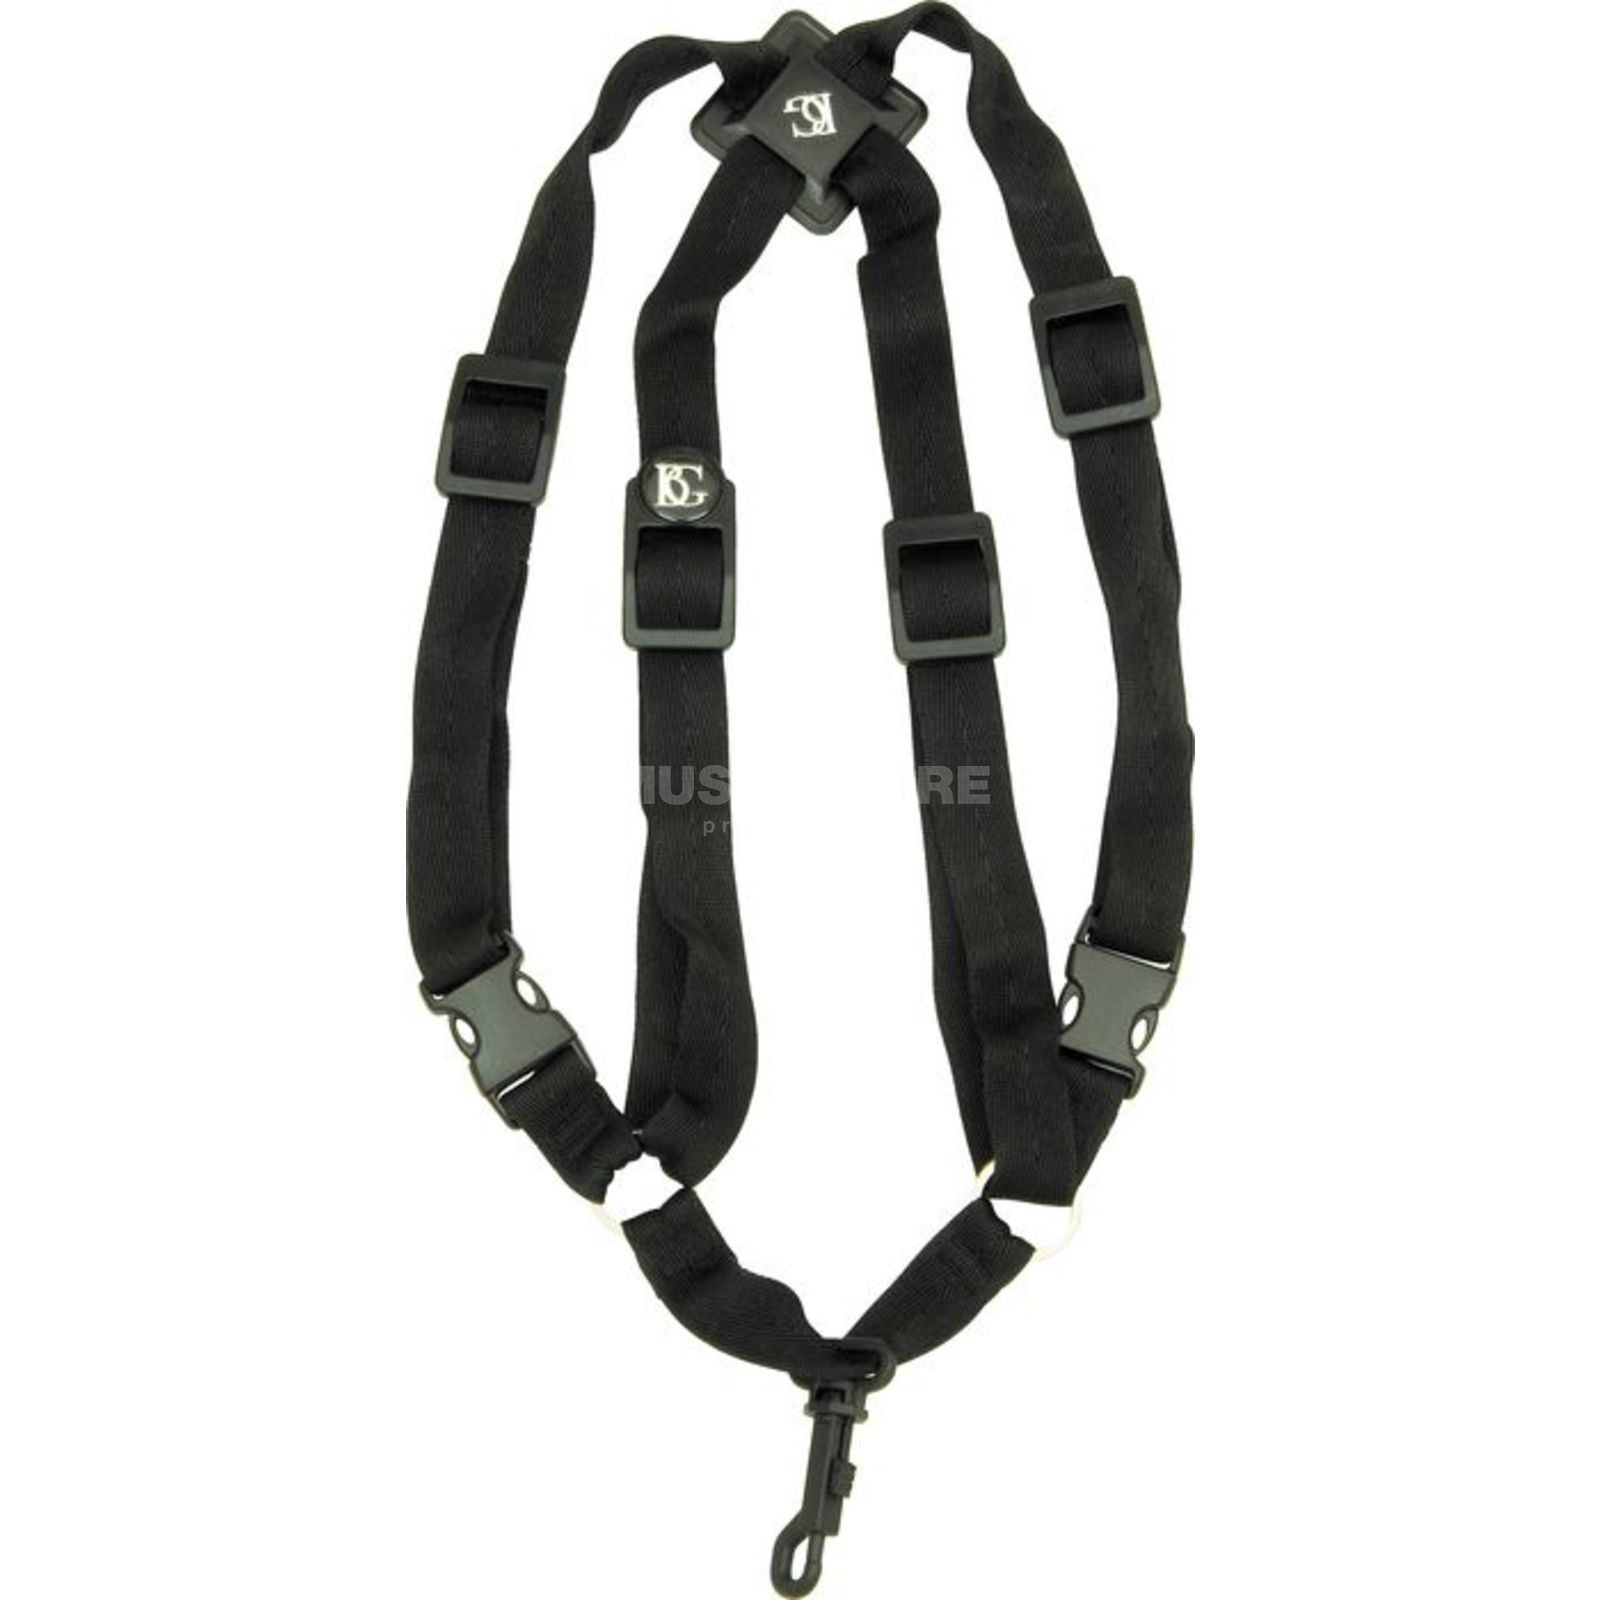 BG S44 SH Carrying Strap Women XL for Saxophone Immagine prodotto